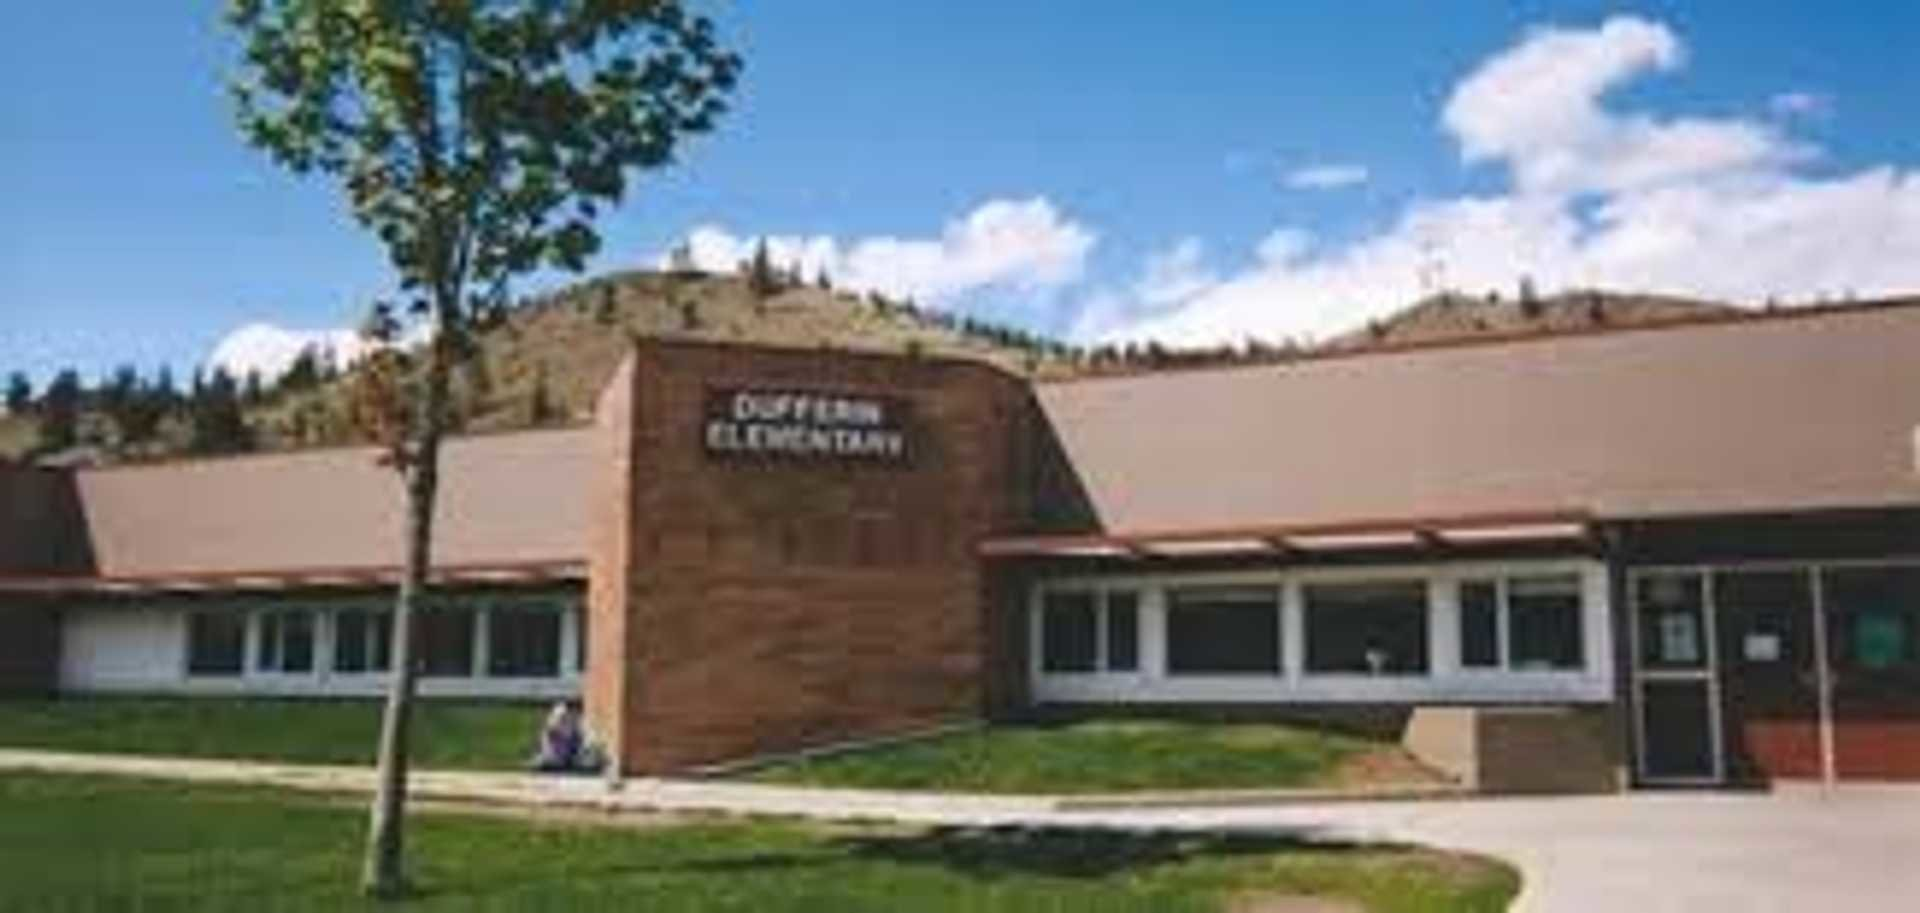 school in kamloops